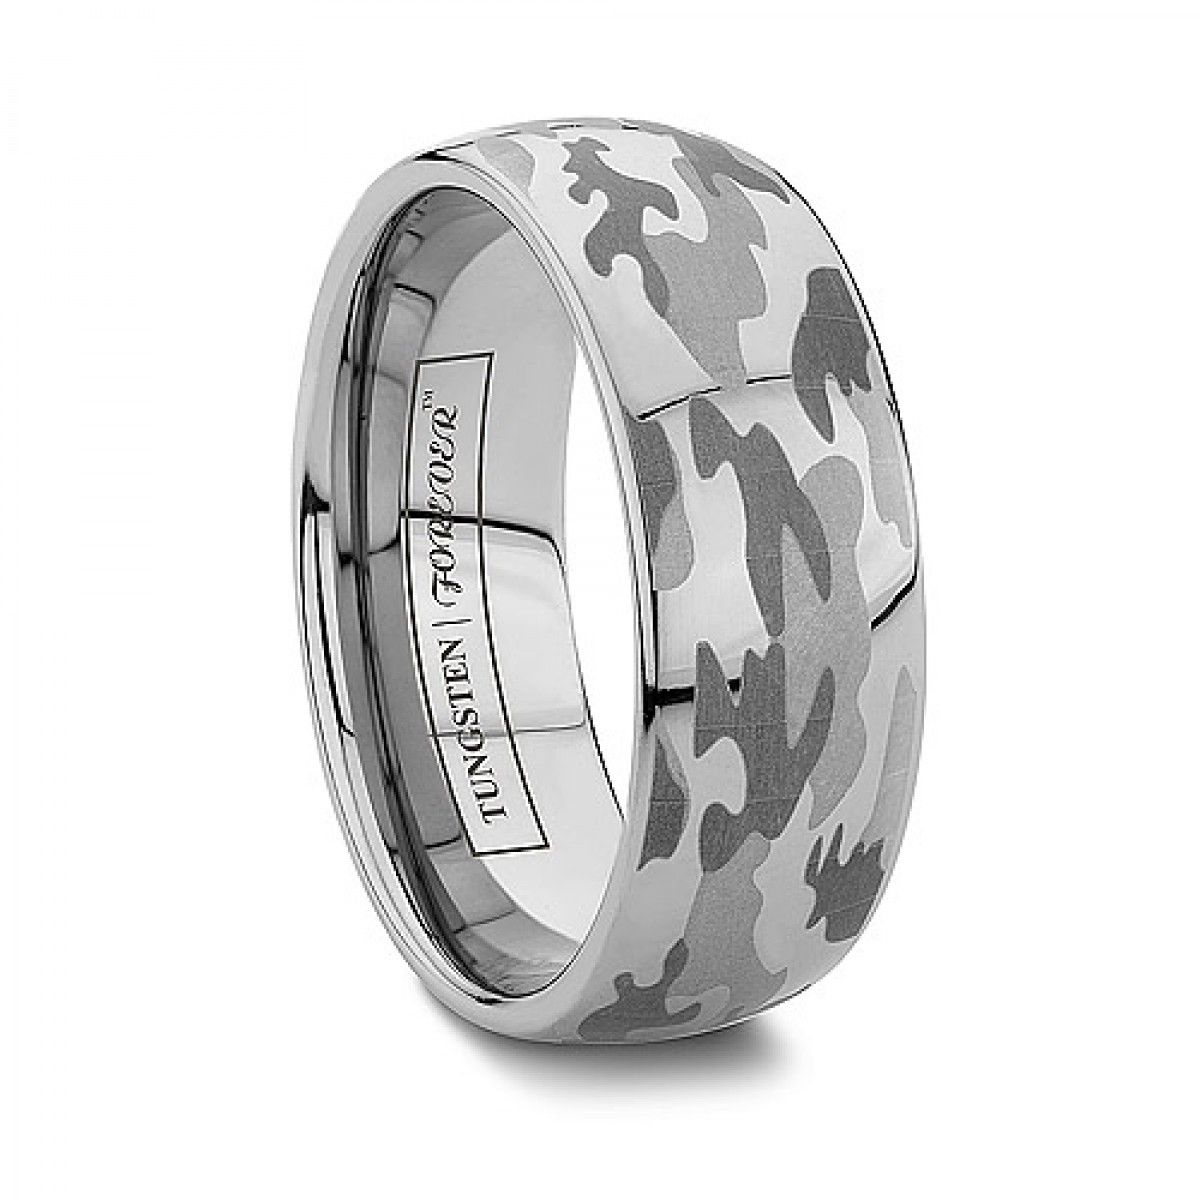 Or Camo Wedding Bands Tungsten Rings Engraved Military Camouflage